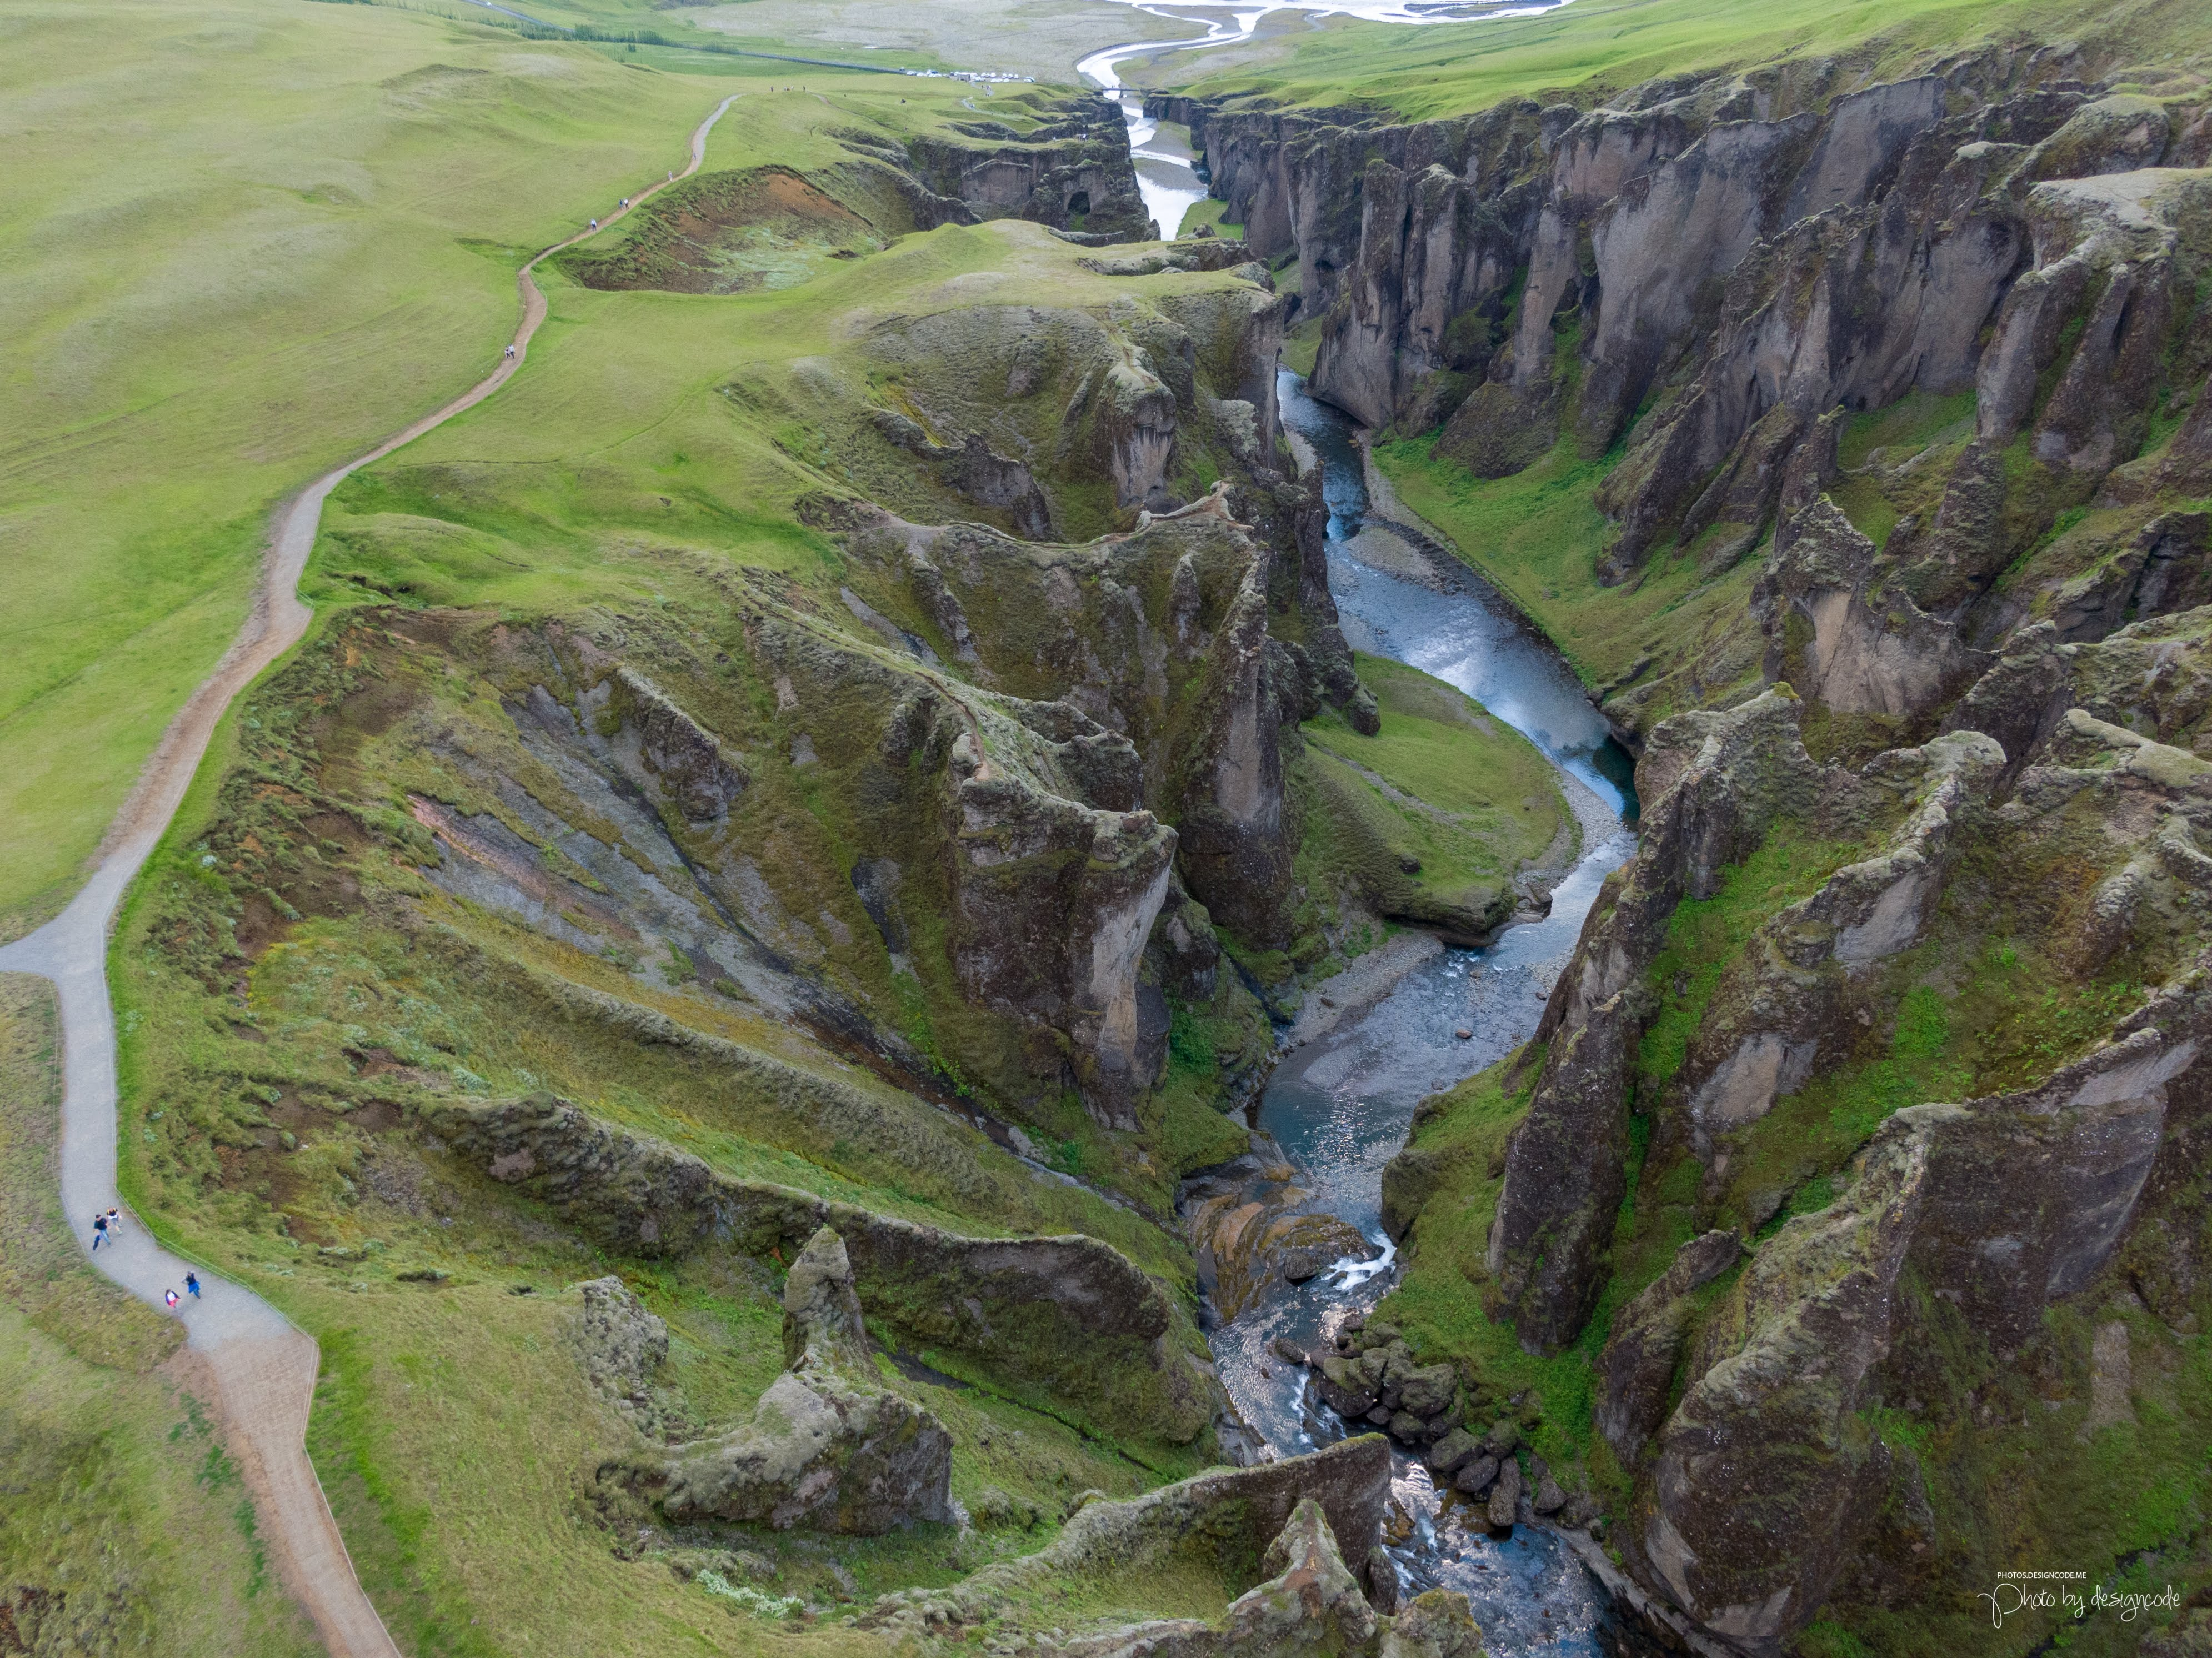 We Traveled Around Iceland In A Mini Camper And Photographed The Beautiful Iceland – Part 1